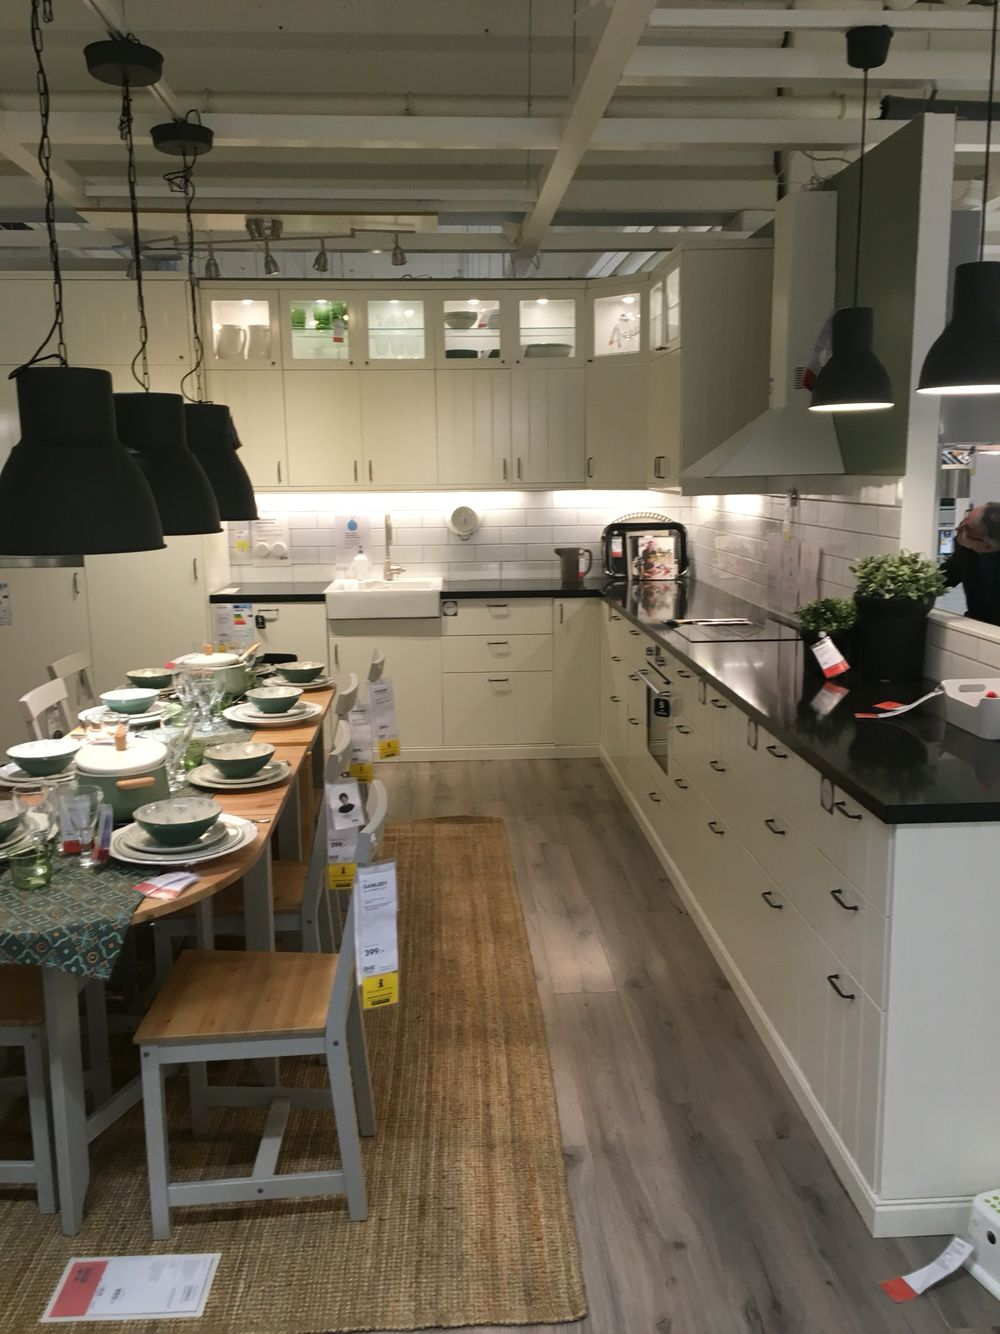 Ikea kitchens hittarp landhausstil kueche - Ikea Kitchen Hittarp